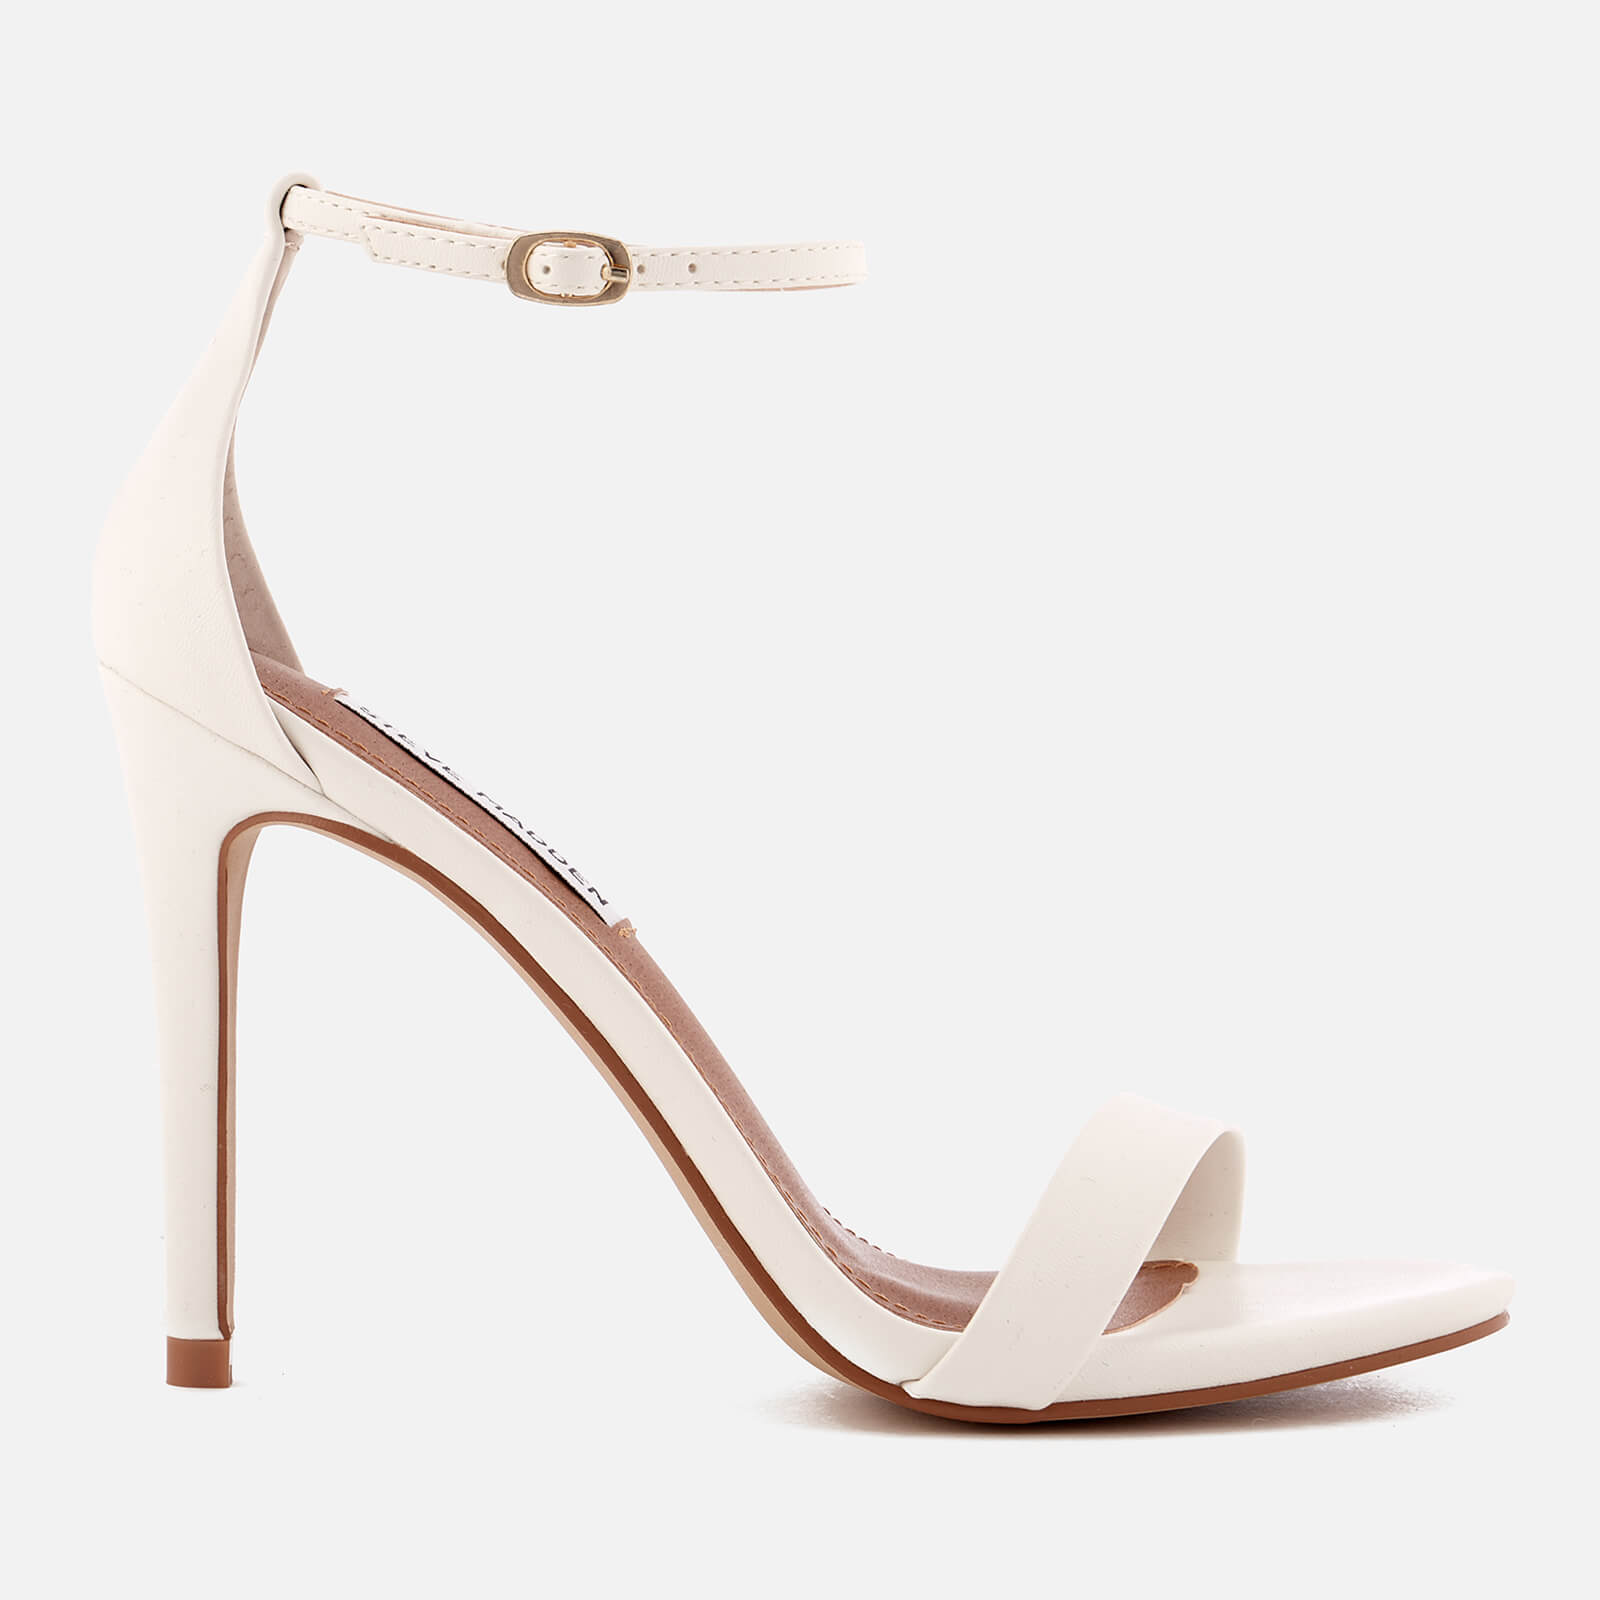 7dd656922092 Steve Madden Women s Stecy Barely There Heeled Sandals - White ...